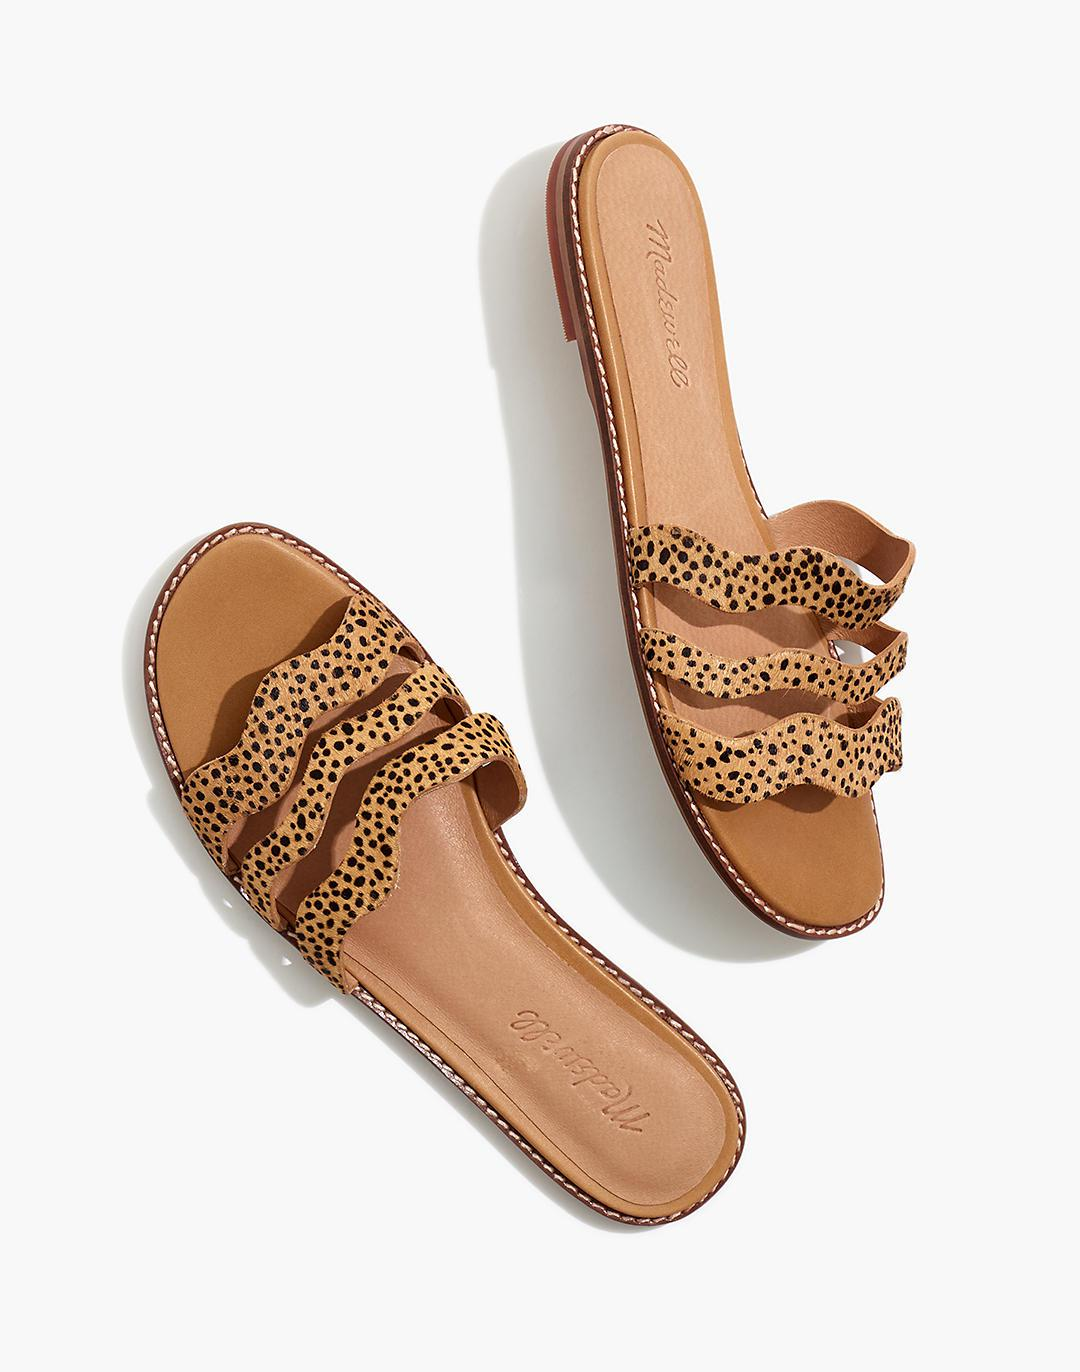 The Wave Slide Sandal in Spotted Calf Hair